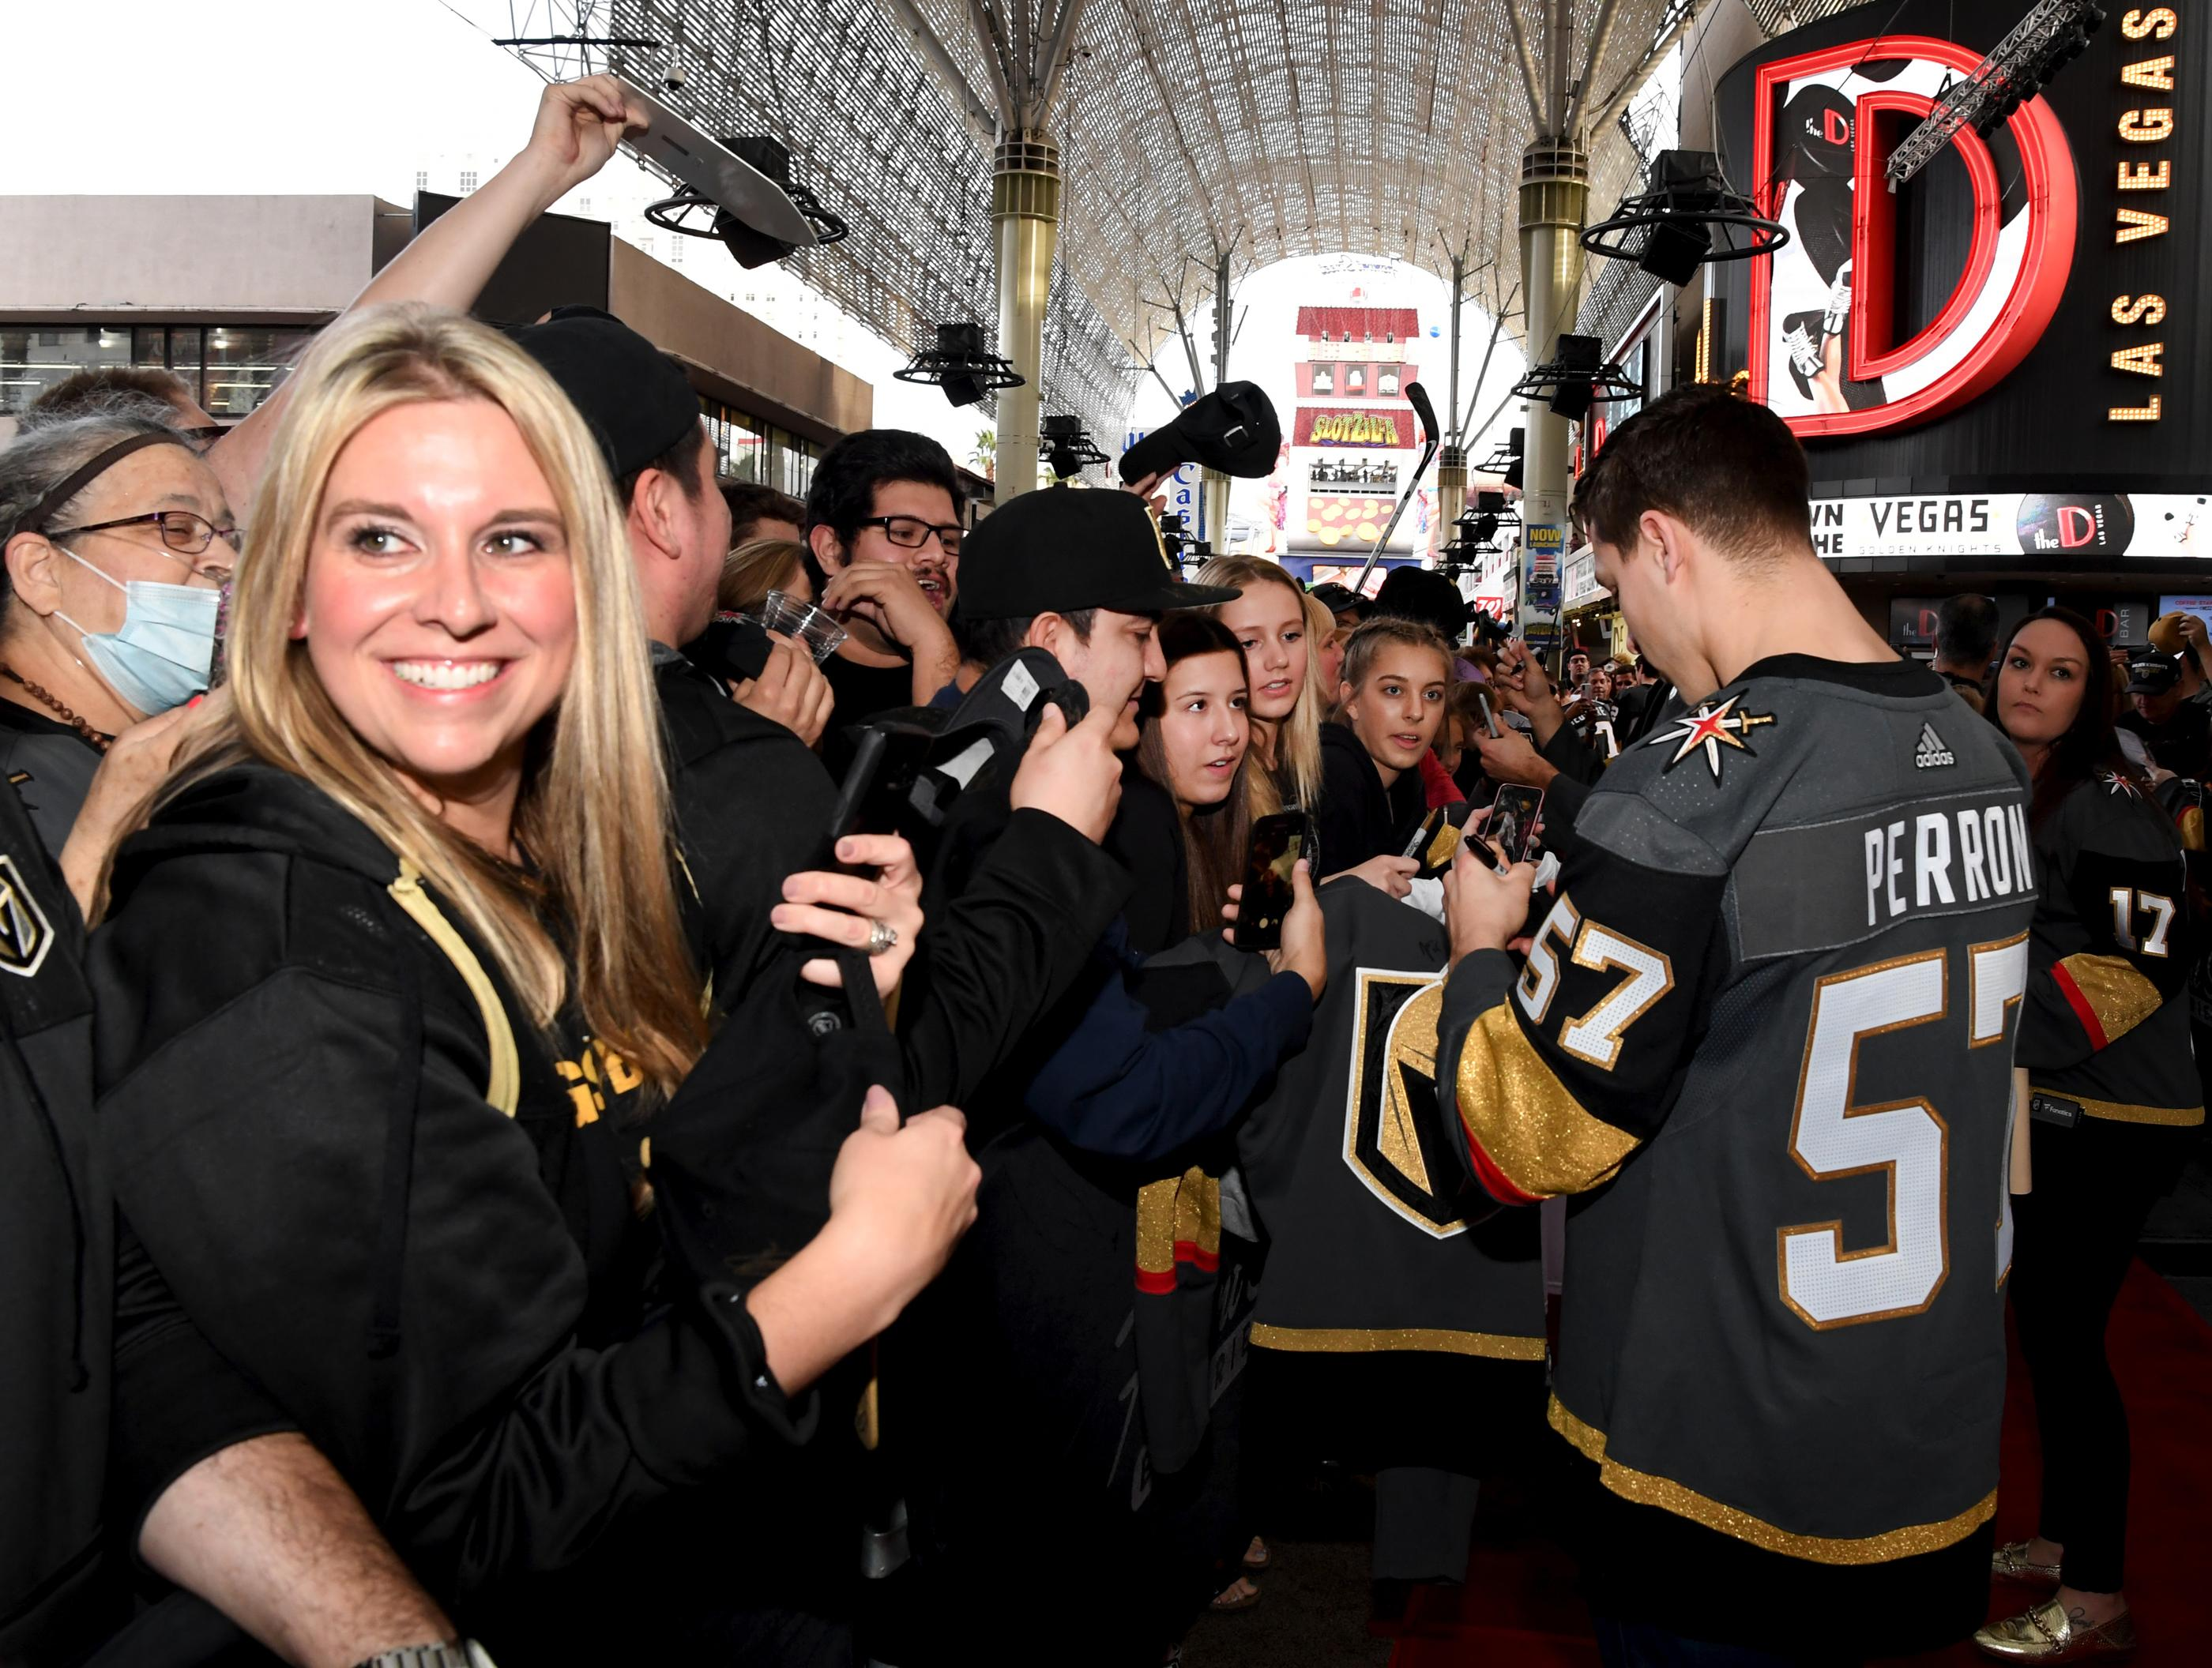 The Golden Knights host a Fan Fest with the D Las Vegas and Fremont Street Experience. Las Vegas Golden Knights player David Perron autographs his way through the crowds of happy fans at Fremont Street Experience. Sunday, January 14, 2017. CREDIT: Glenn Pinkerton/Las Vegas News Bureau